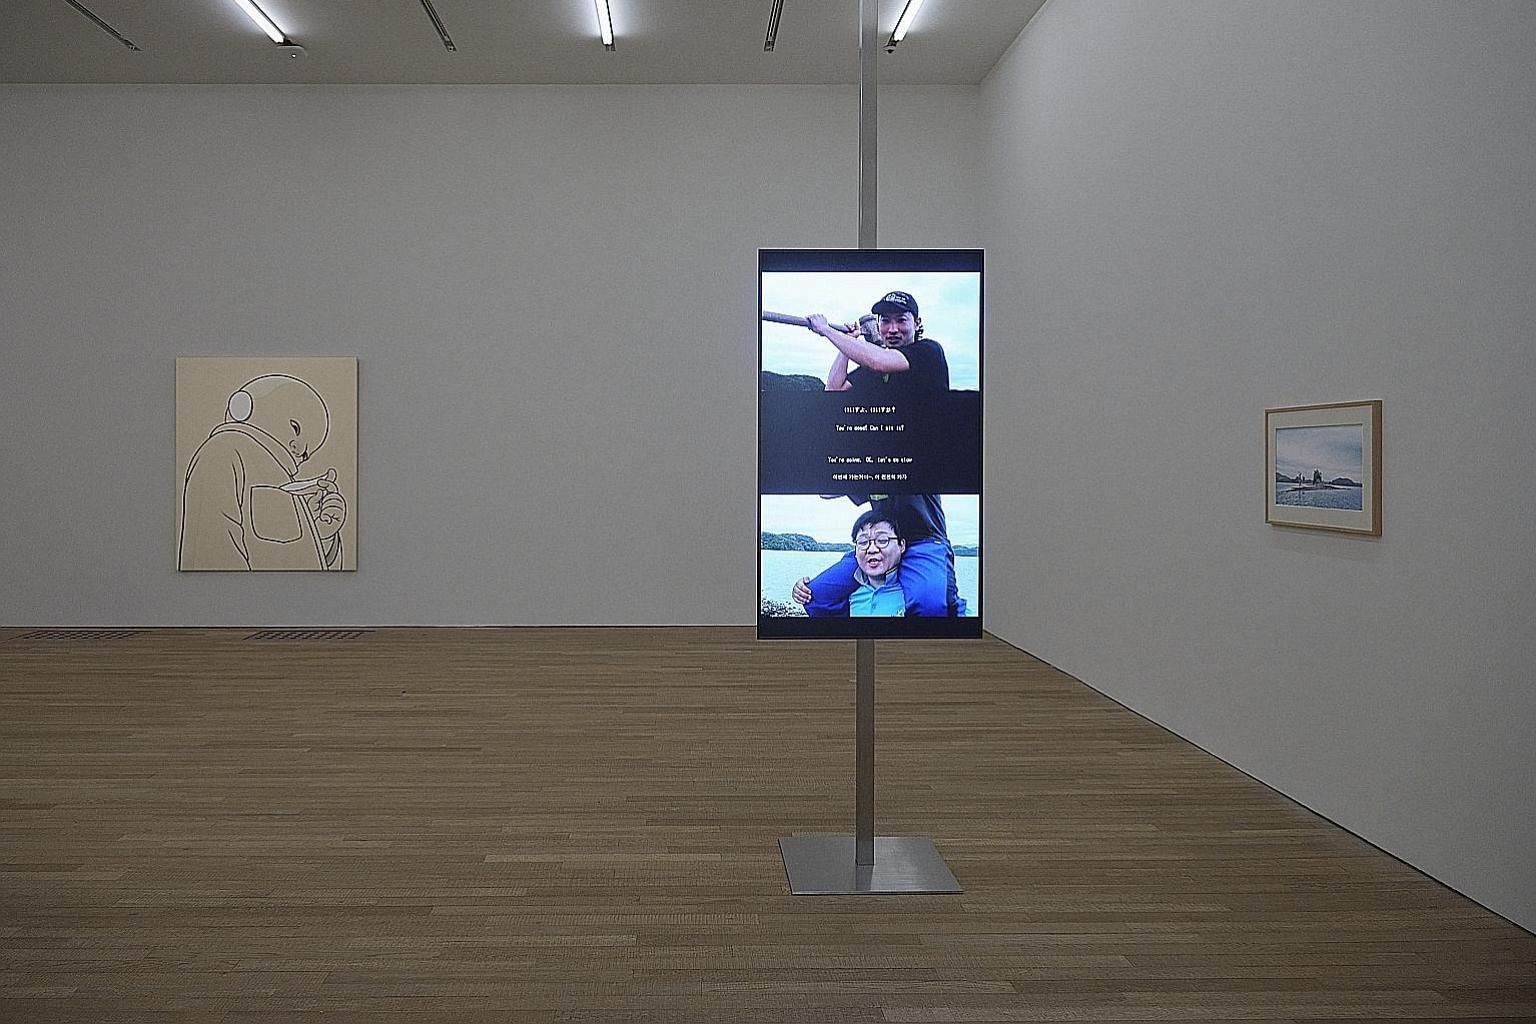 Works on show include They Do Not Understand Each Other (left) by Japanese artist Tsubasa Kato and Earth (above) by Singaporean artist Ho Tzu Nyen.